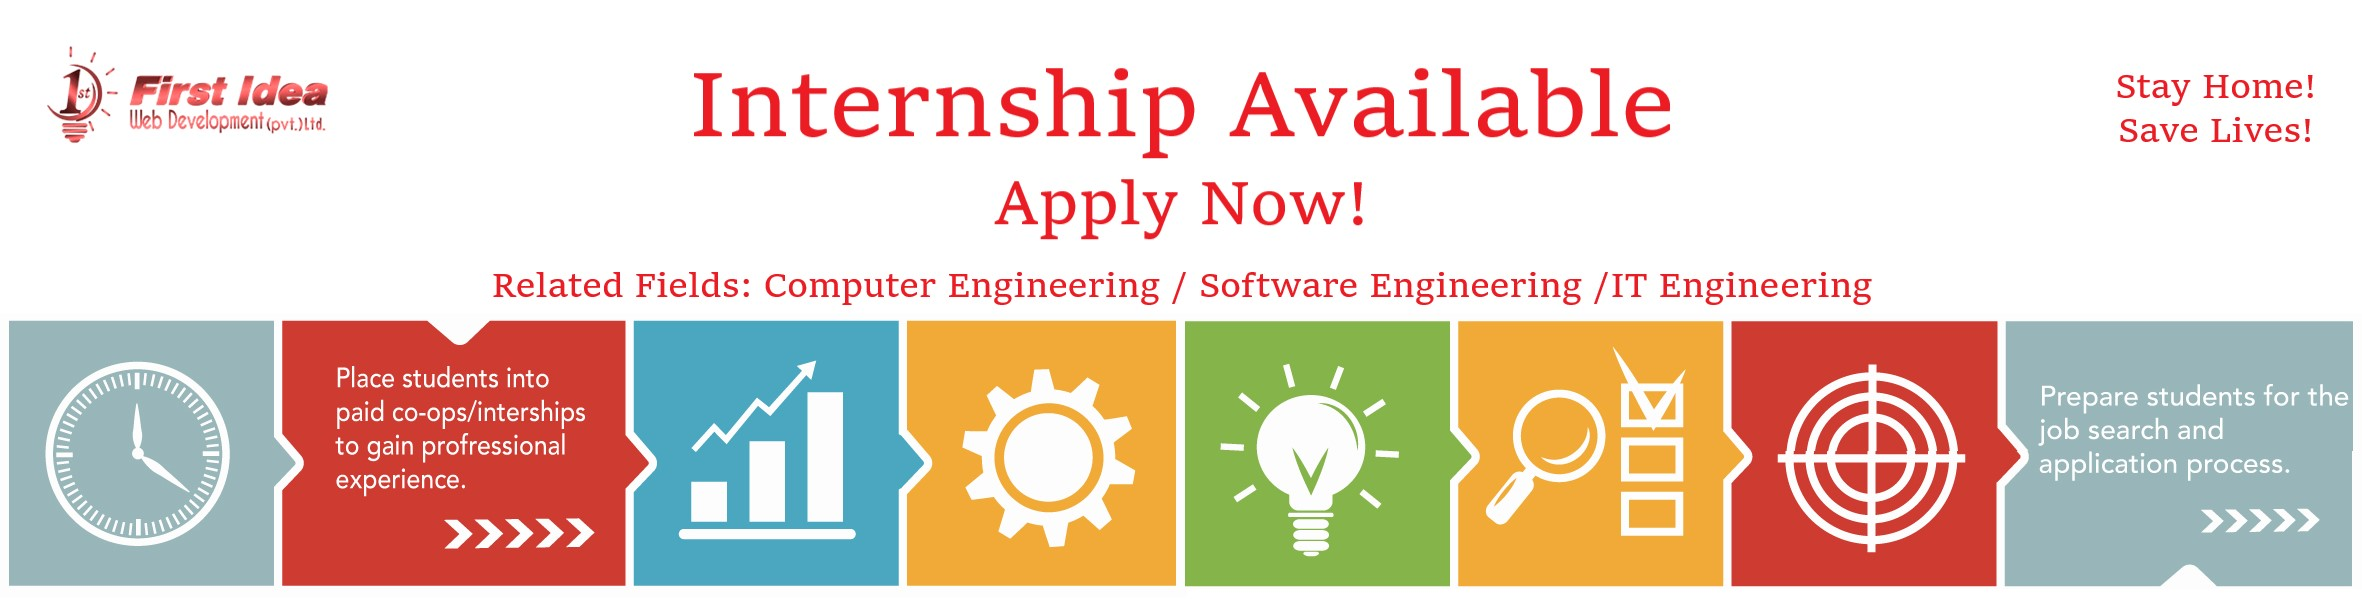 Looking for internship after IT / Software / Computer Engineering? Select your field first!